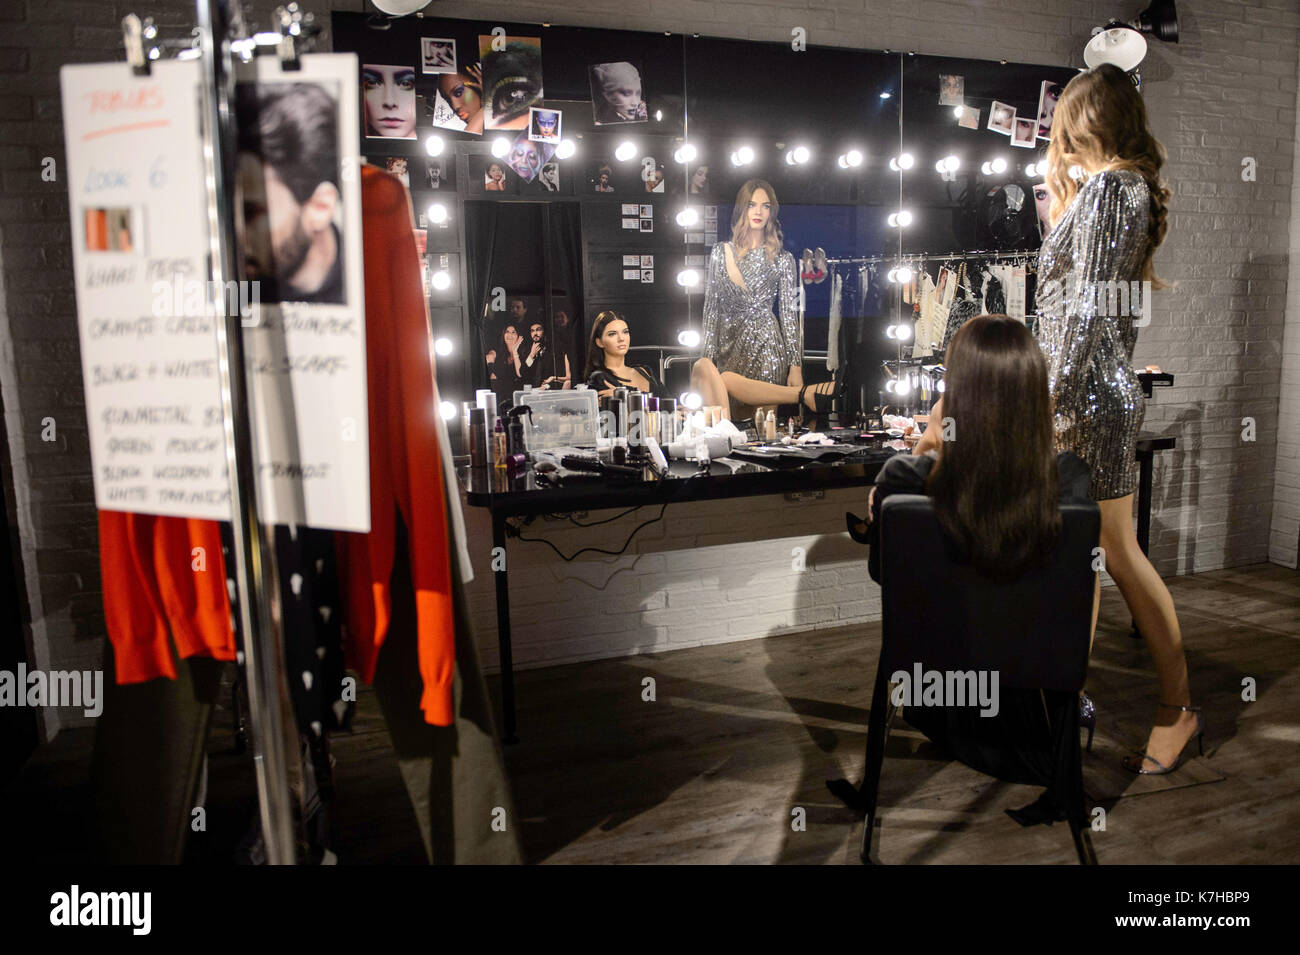 Photo Must Be Credited ©Alpha Press 065630 07/02/2016 Cara Delevingne looks on as Kendall Jenner finalises her look for Fashion Week at Madame Tussauds London. Madame Tussauds London gave 100 fashionistas a special preview of its new behind-the-scenes fashion experience this weekend, before opening to the public today. The new addition to the World famous attraction offers guests a peek backstage at an international fashion event brought to life through a multisensory set, plus fans get to hang out with two of the fashion world's most famous faces, Kendall Jenner and Cara Delevingne (plus a gu - Stock Image